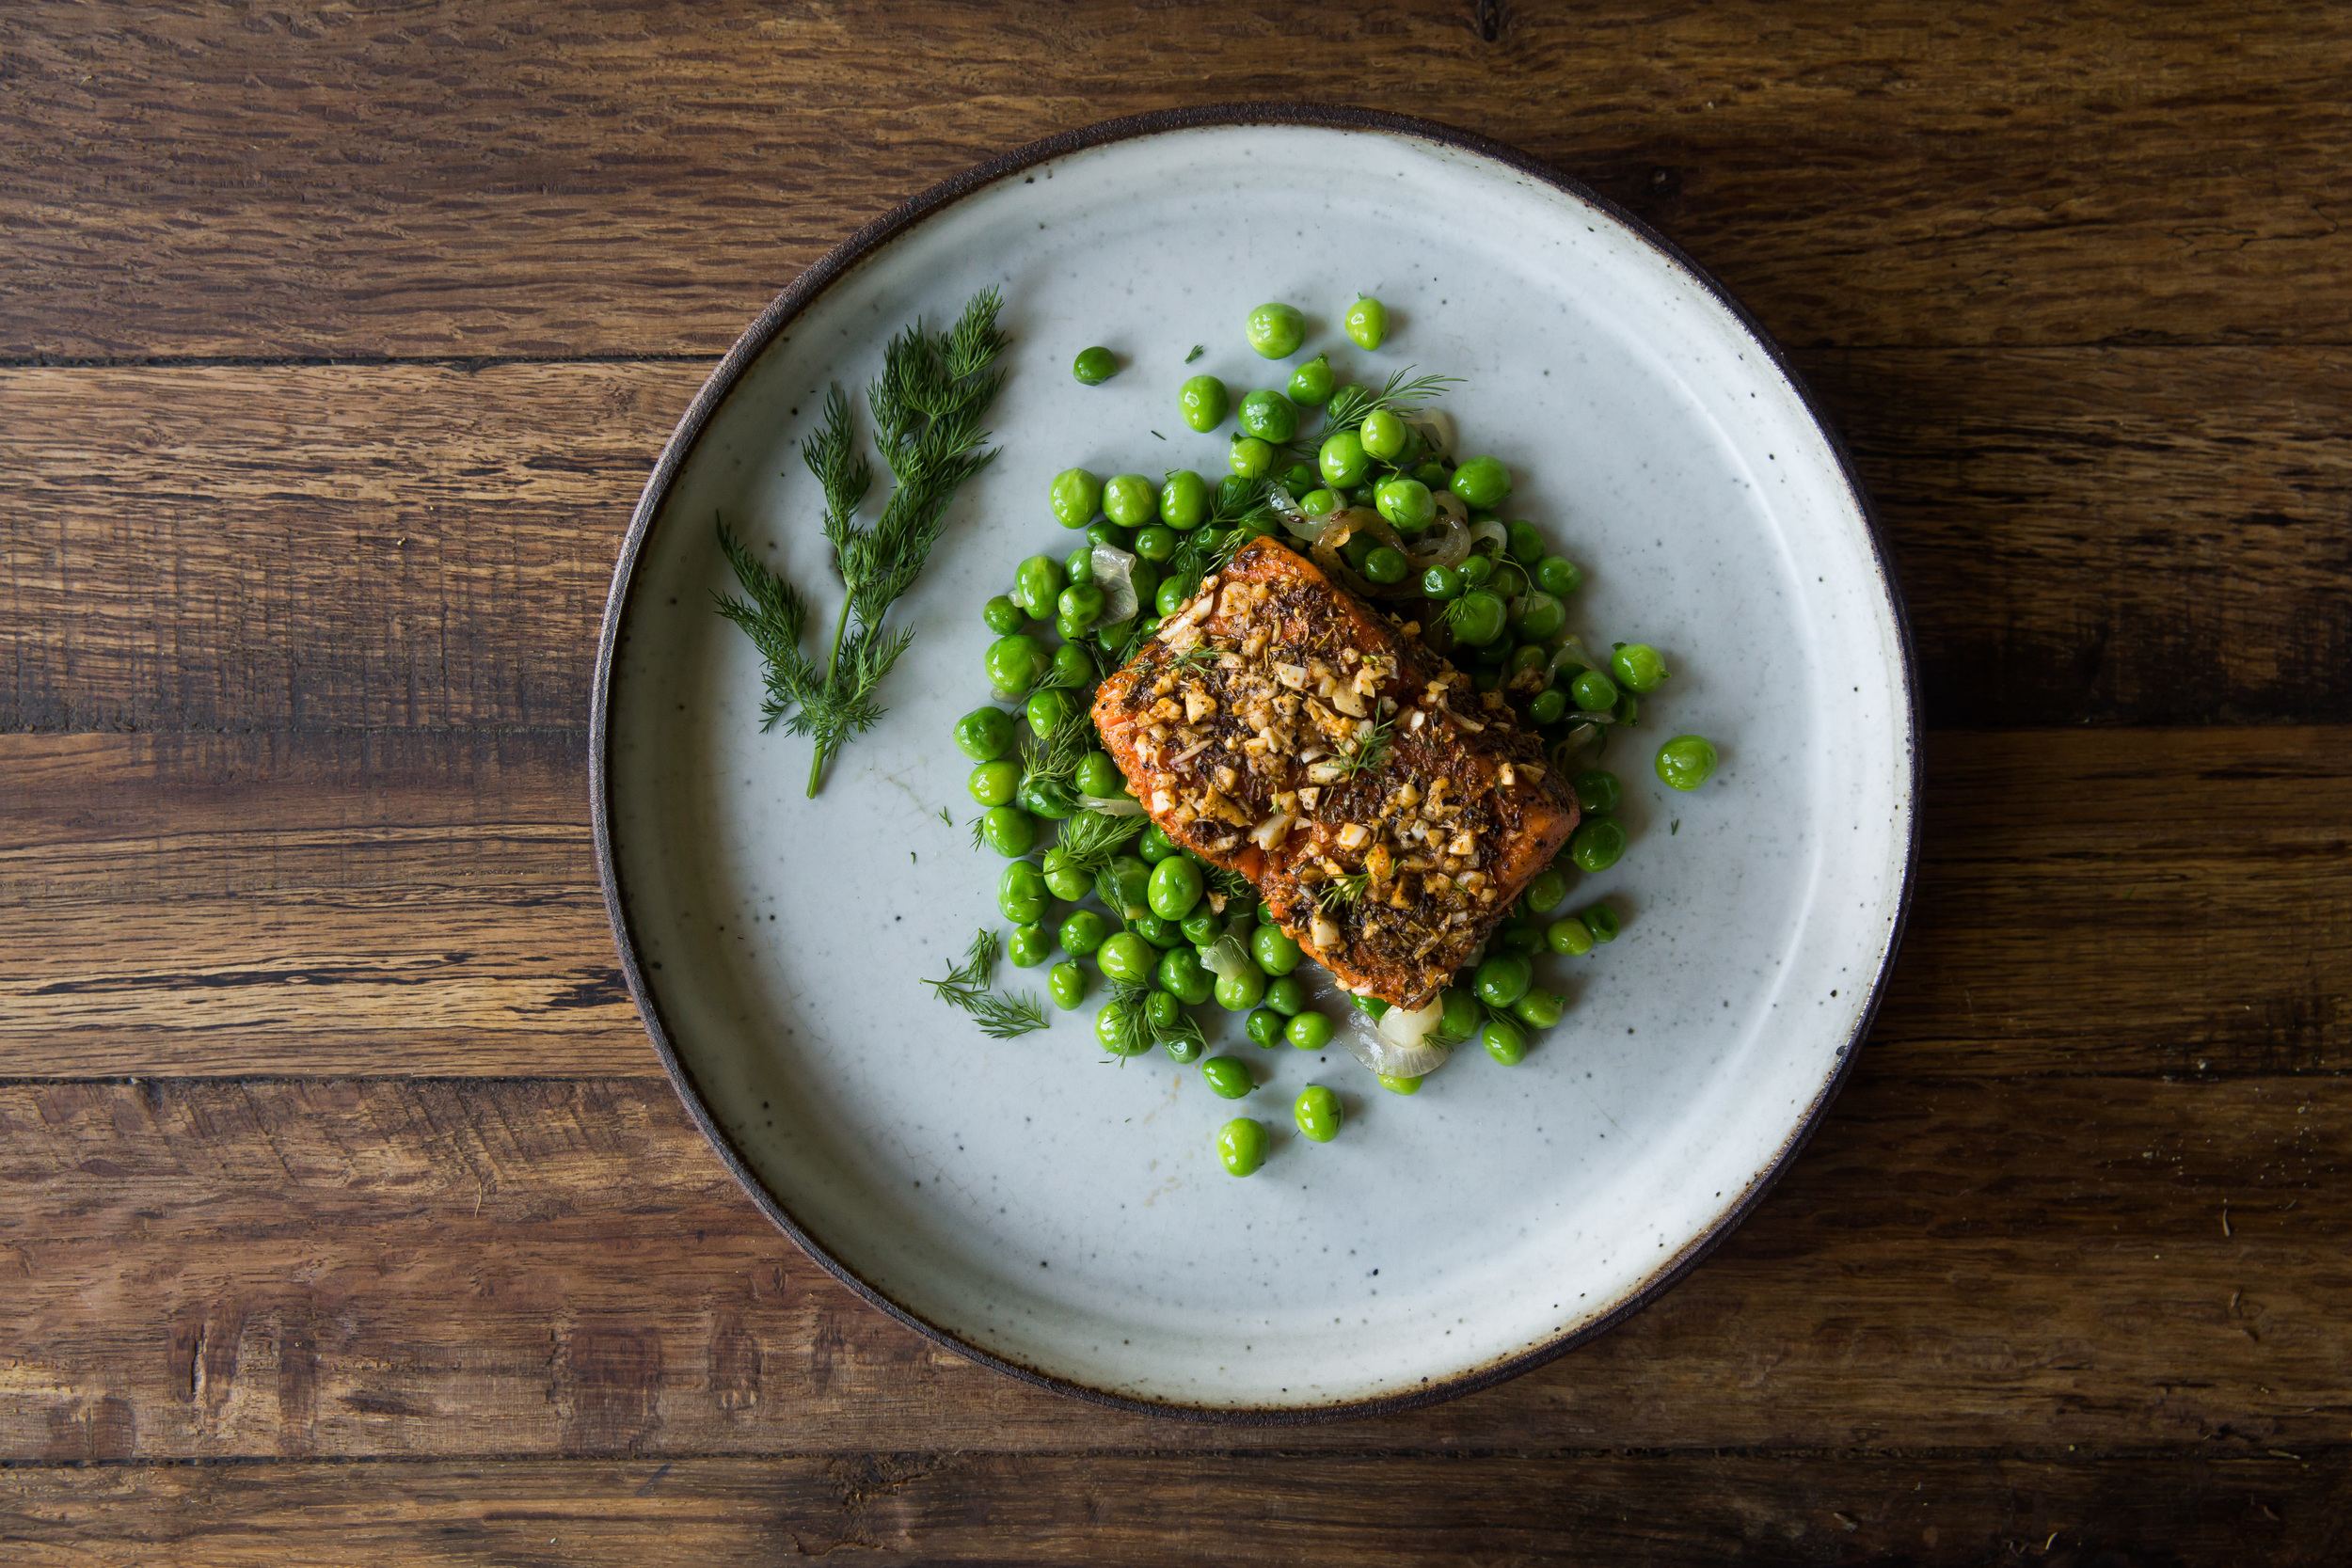 personal, chef, healthy, nutritious, meals, salmon 4